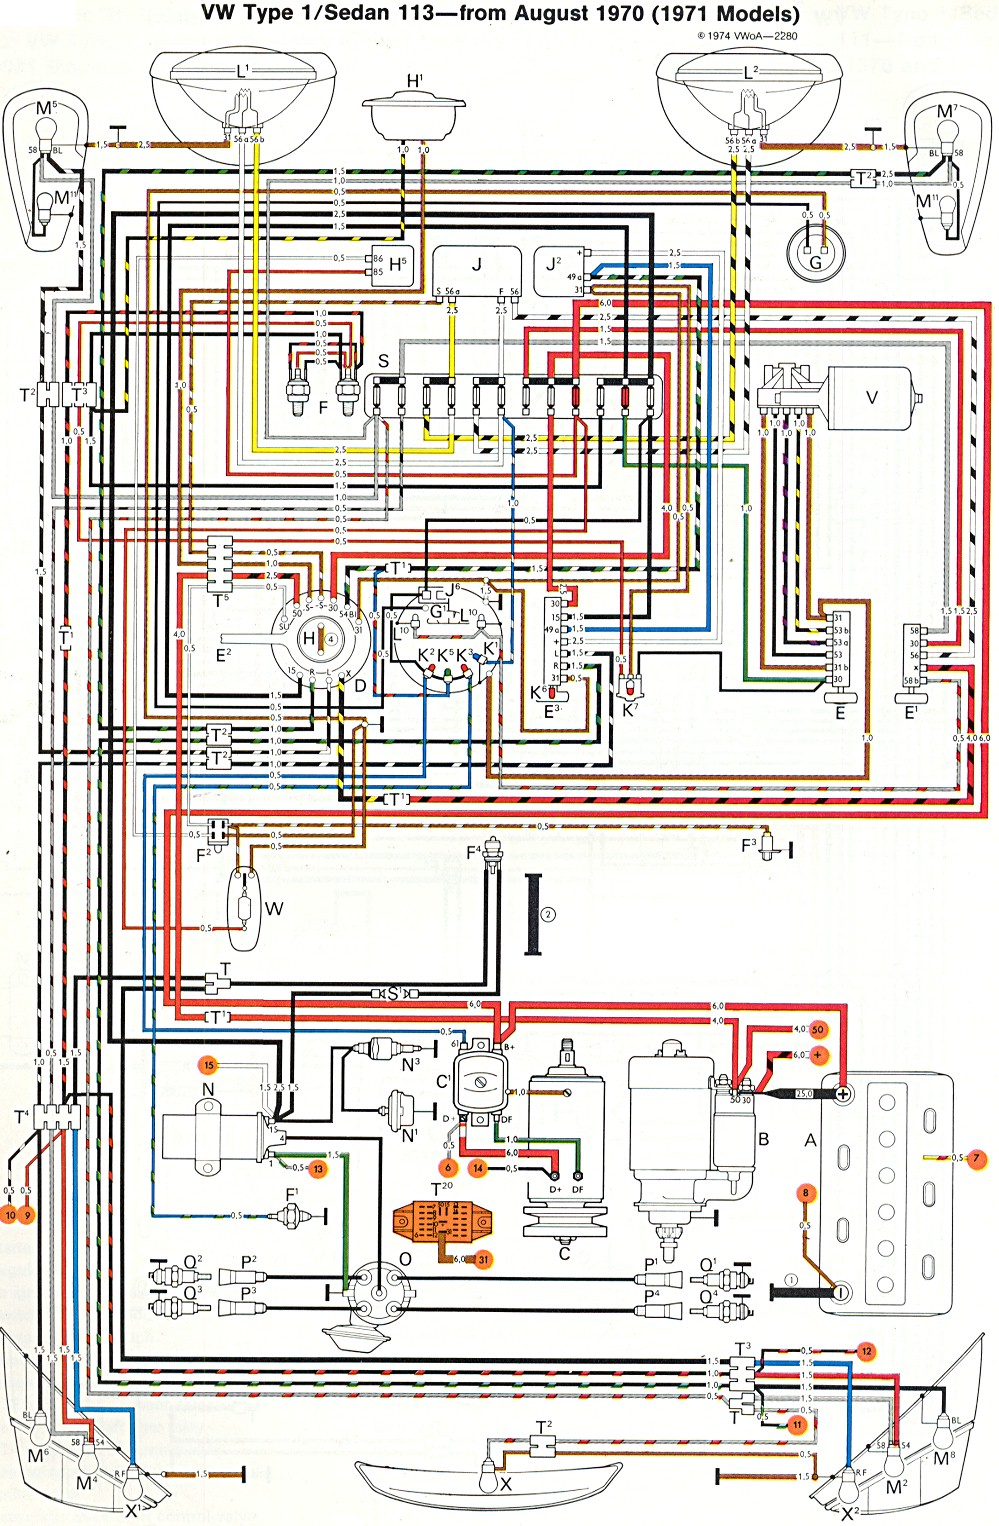 bug_super_71 2002 vw beetle wiring diagram altenator wiring diagram 2002 vw 1965 vw beetle wiring diagram at edmiracle.co